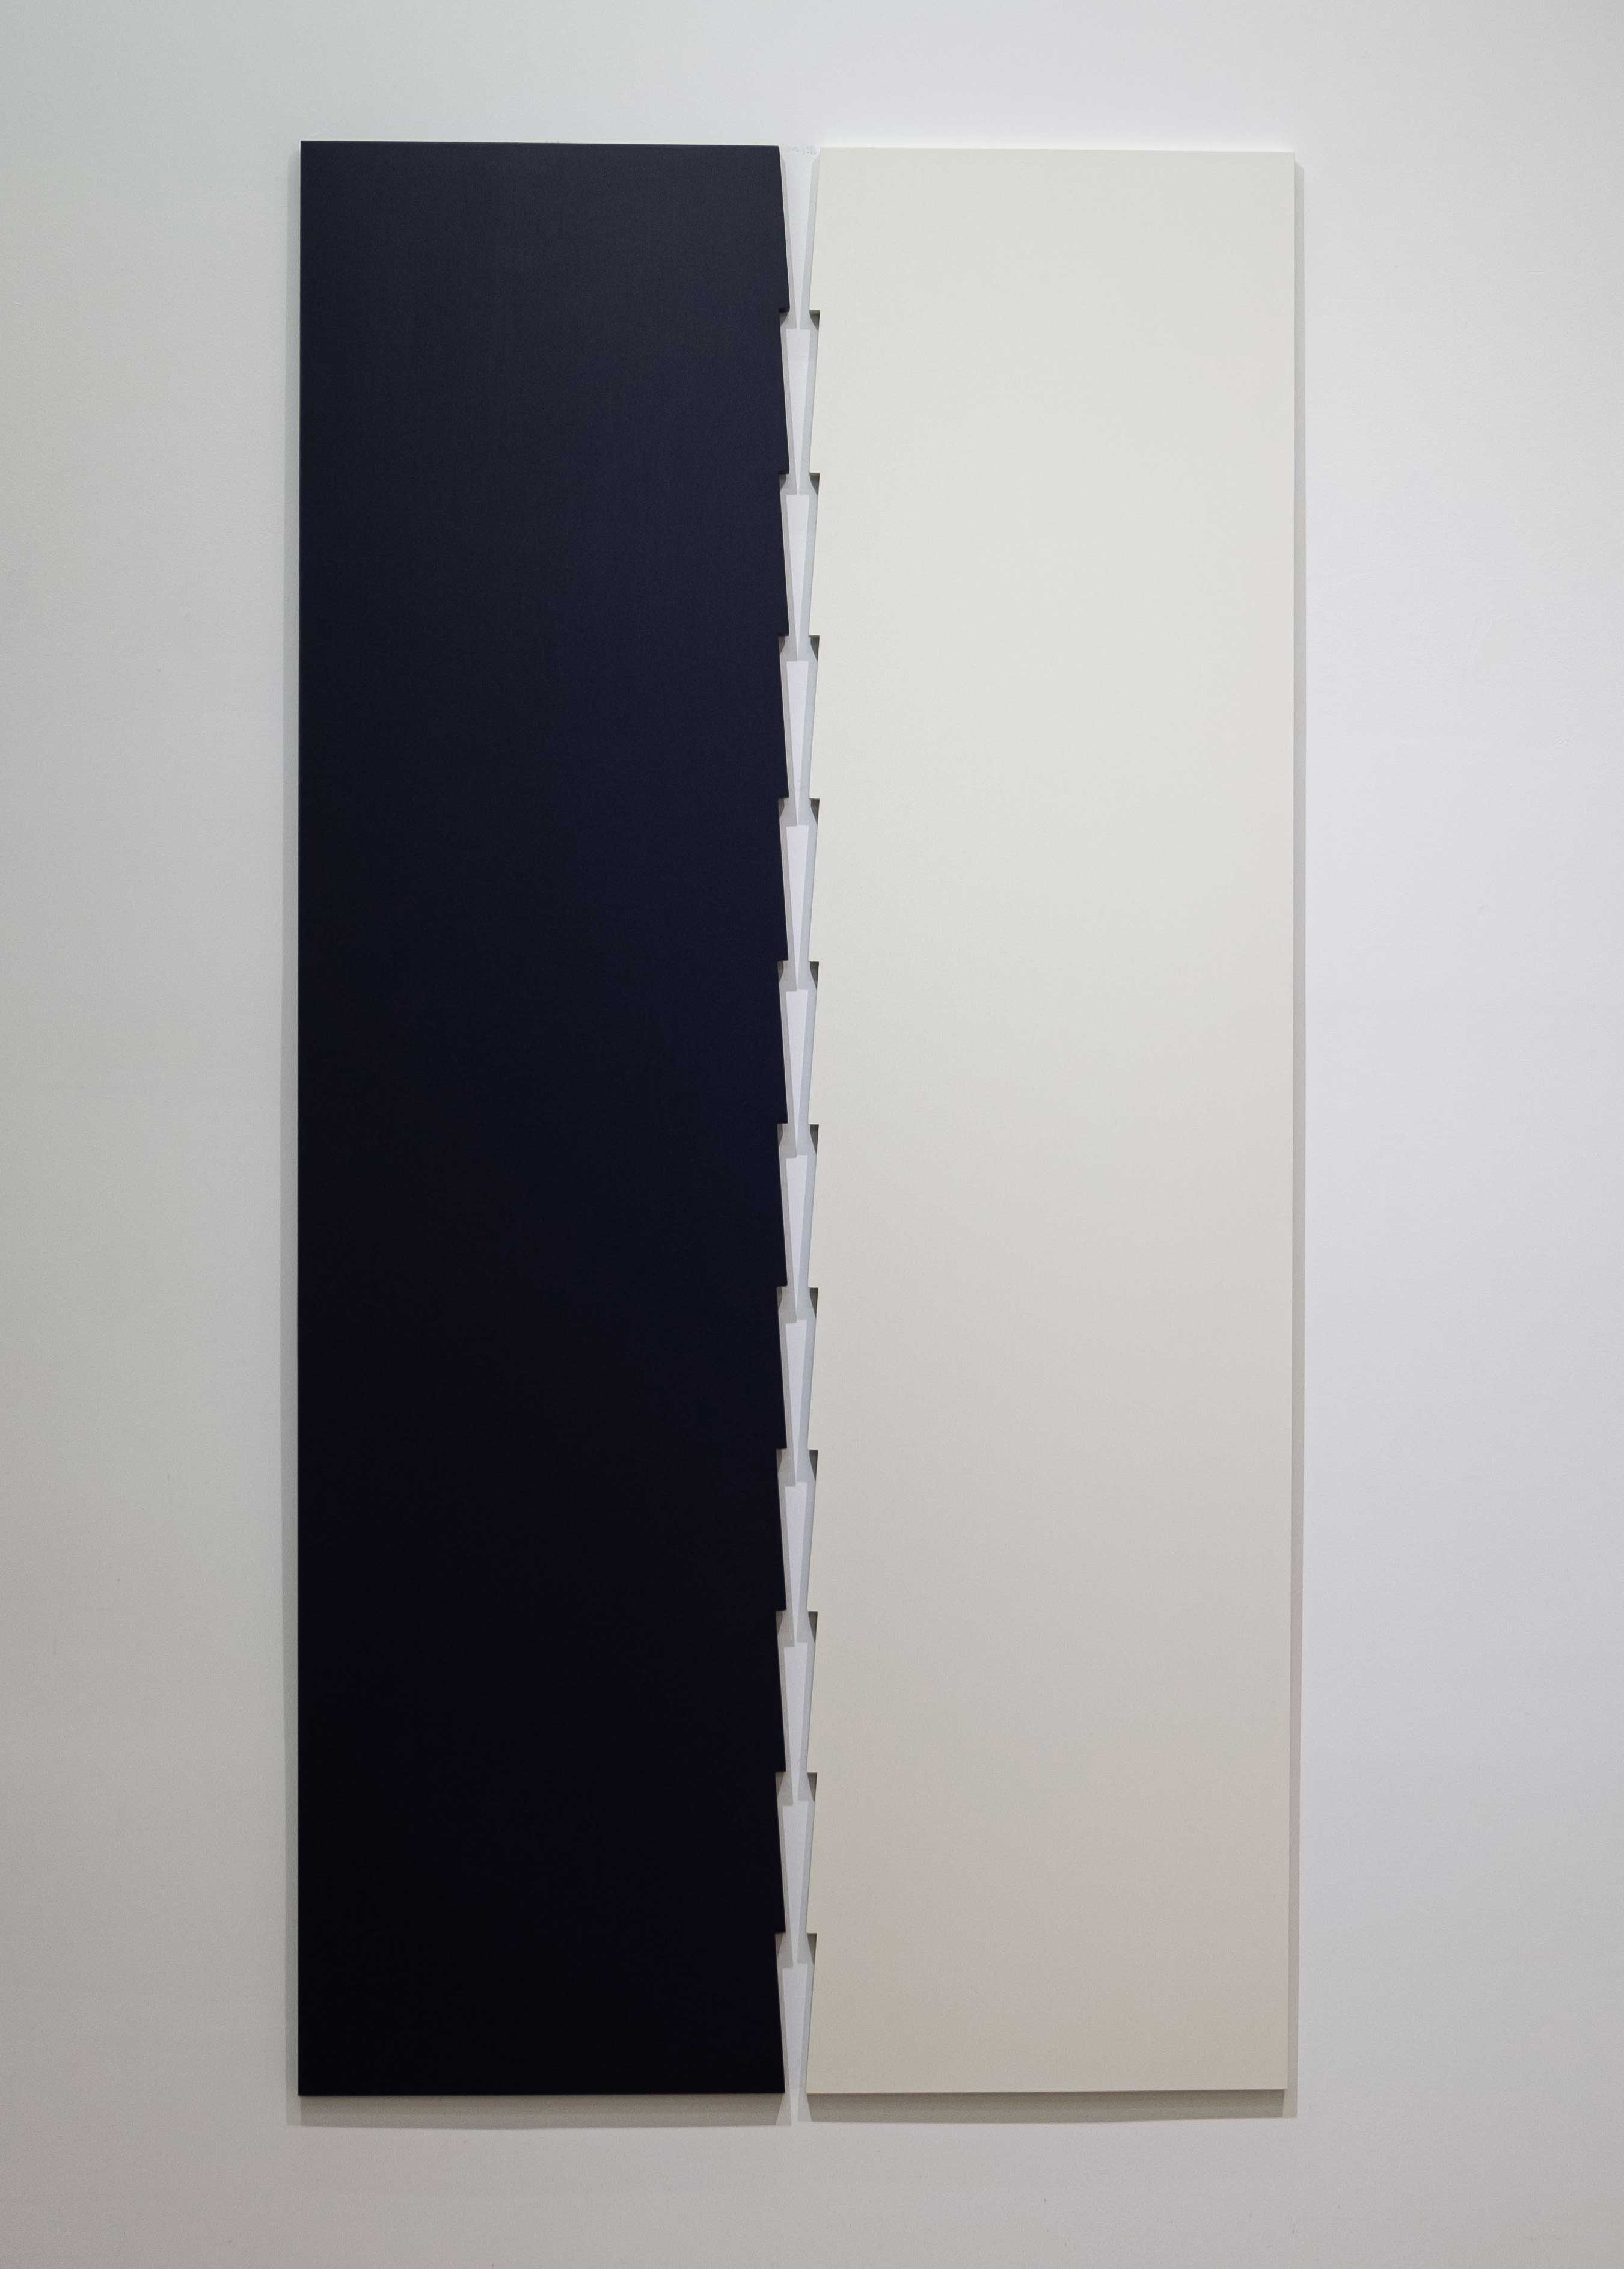 Tess Jaray 2016 Oil on board 62.6 x 31.1 inches (159 x 79 cm) 2019 Marc Straus Gallery